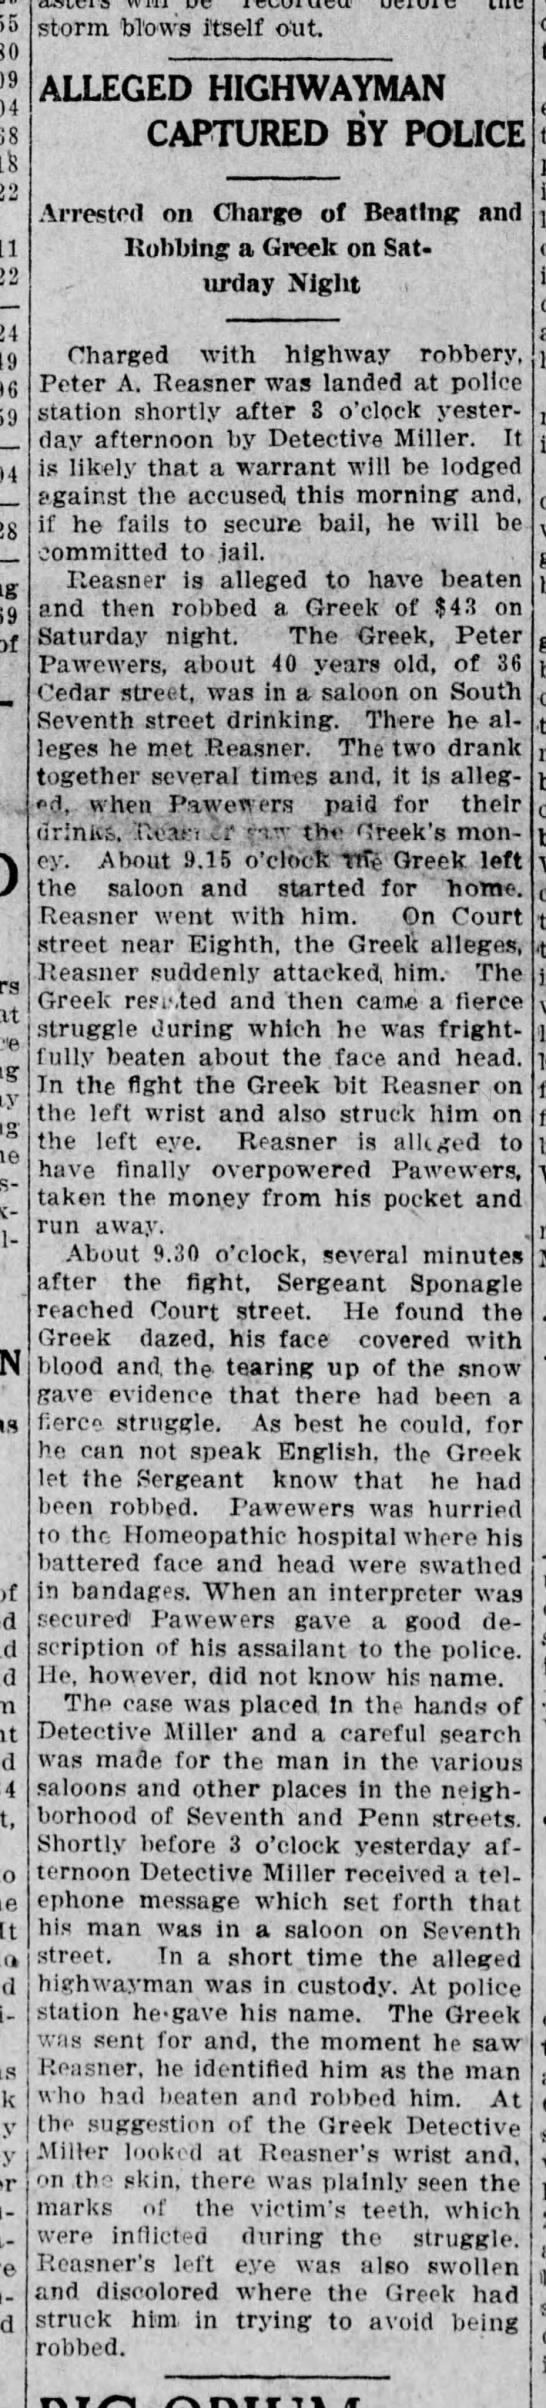 Peter Reasner fights with greek. -